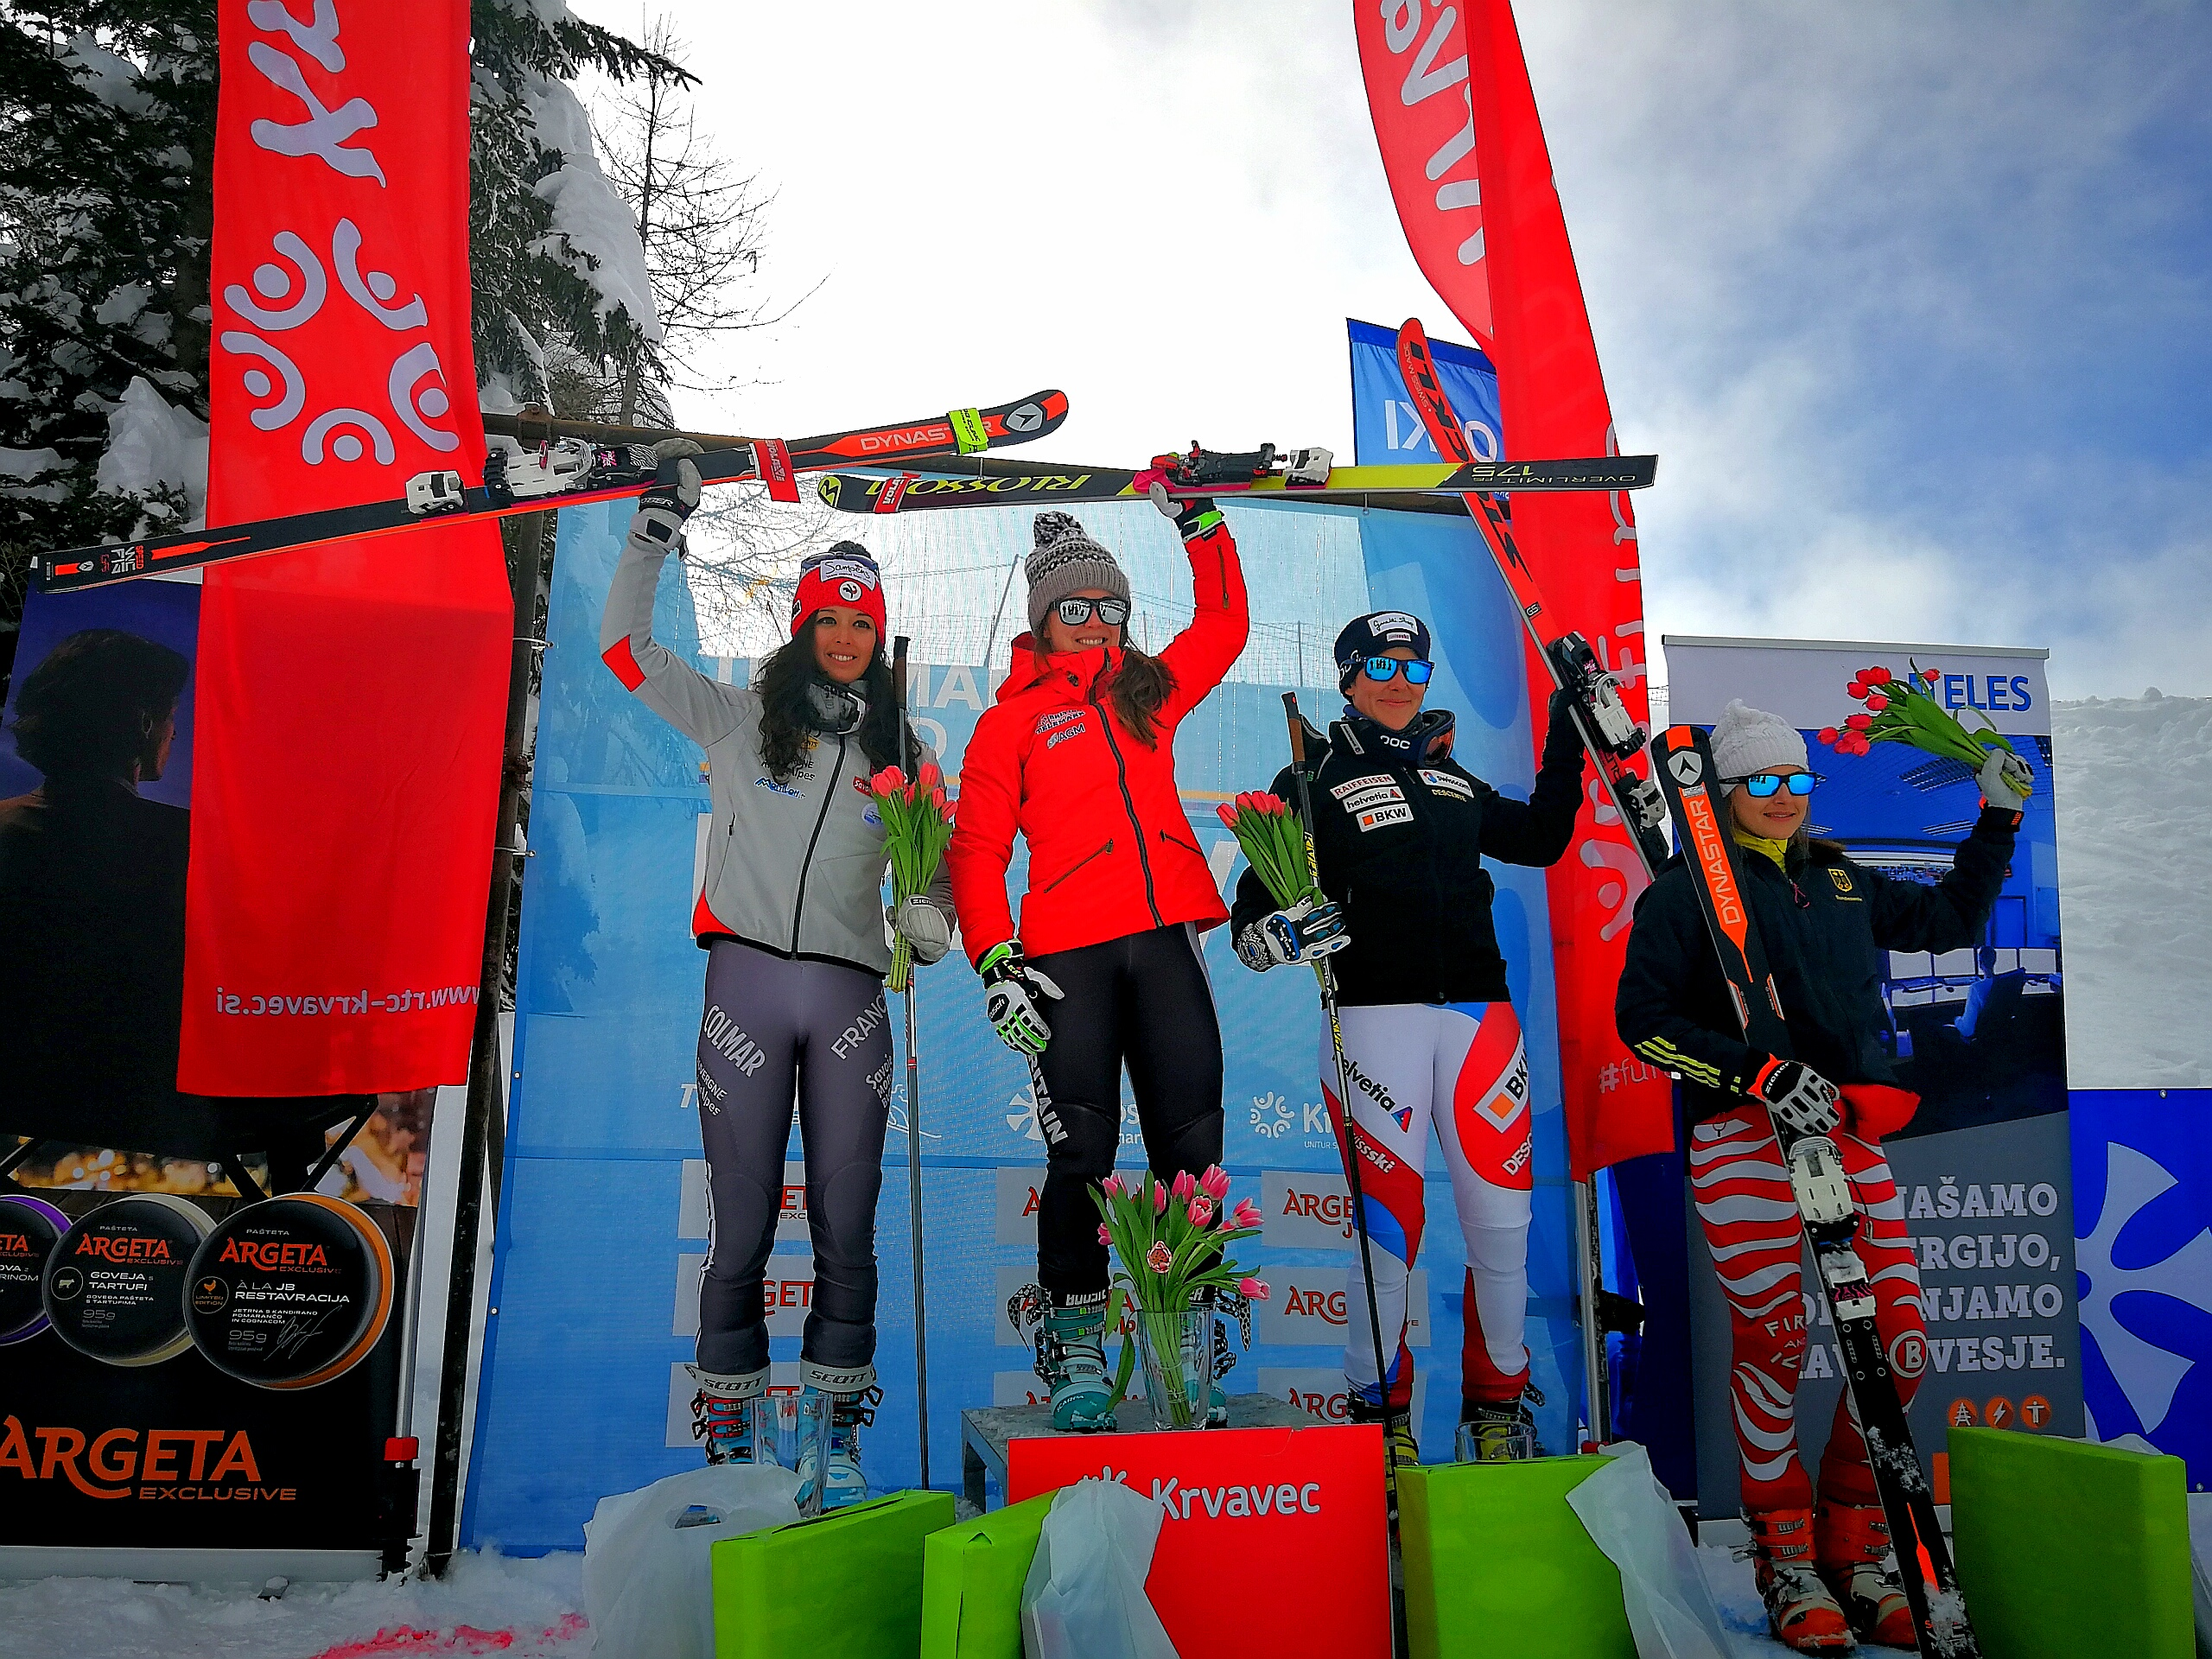 The podium with (L to R) Argeline Tan Bouquet (FRA), Jasmin Taylor (GBR), Beatrice Zimmermann (SUI)